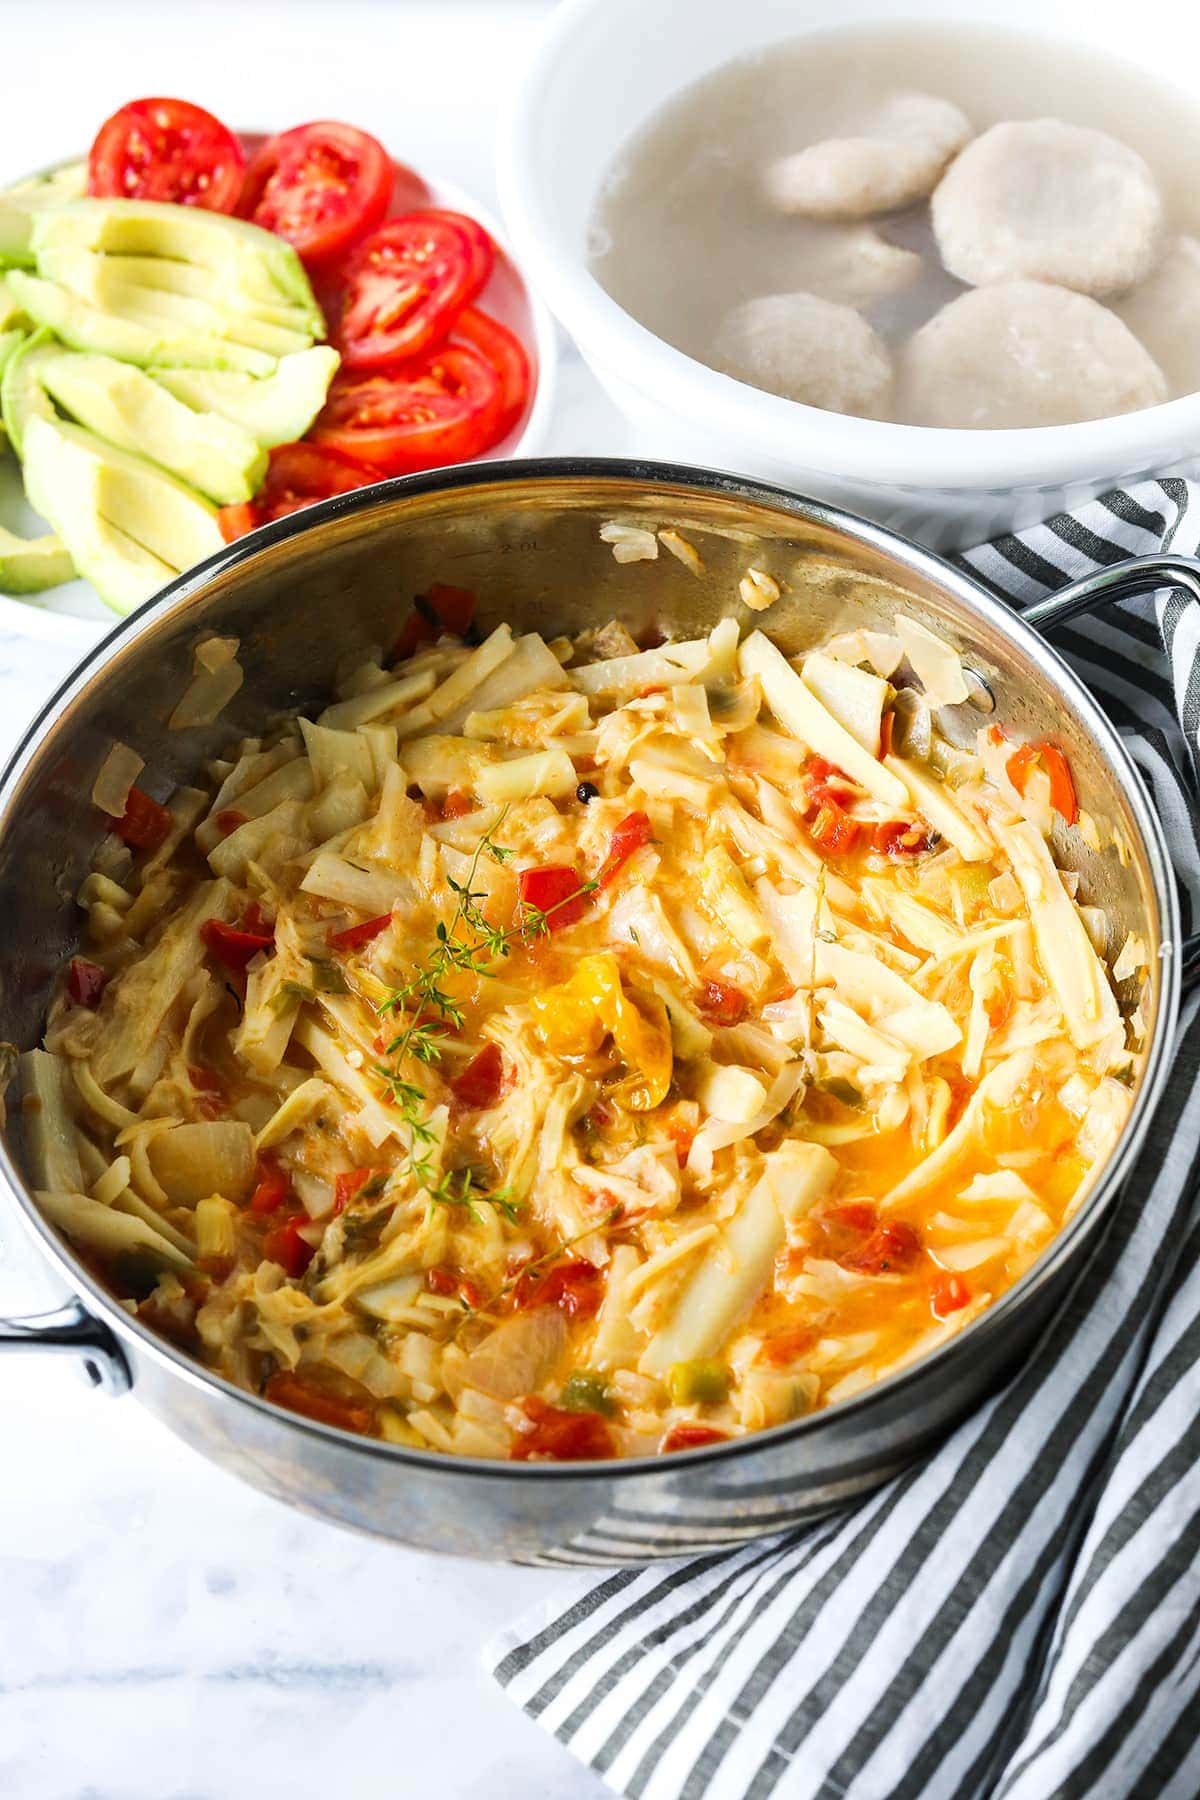 overlay vegan saltfish in a saucepan with dumplings in a white bowl, avocado and tomato slices on a white plate on a white background